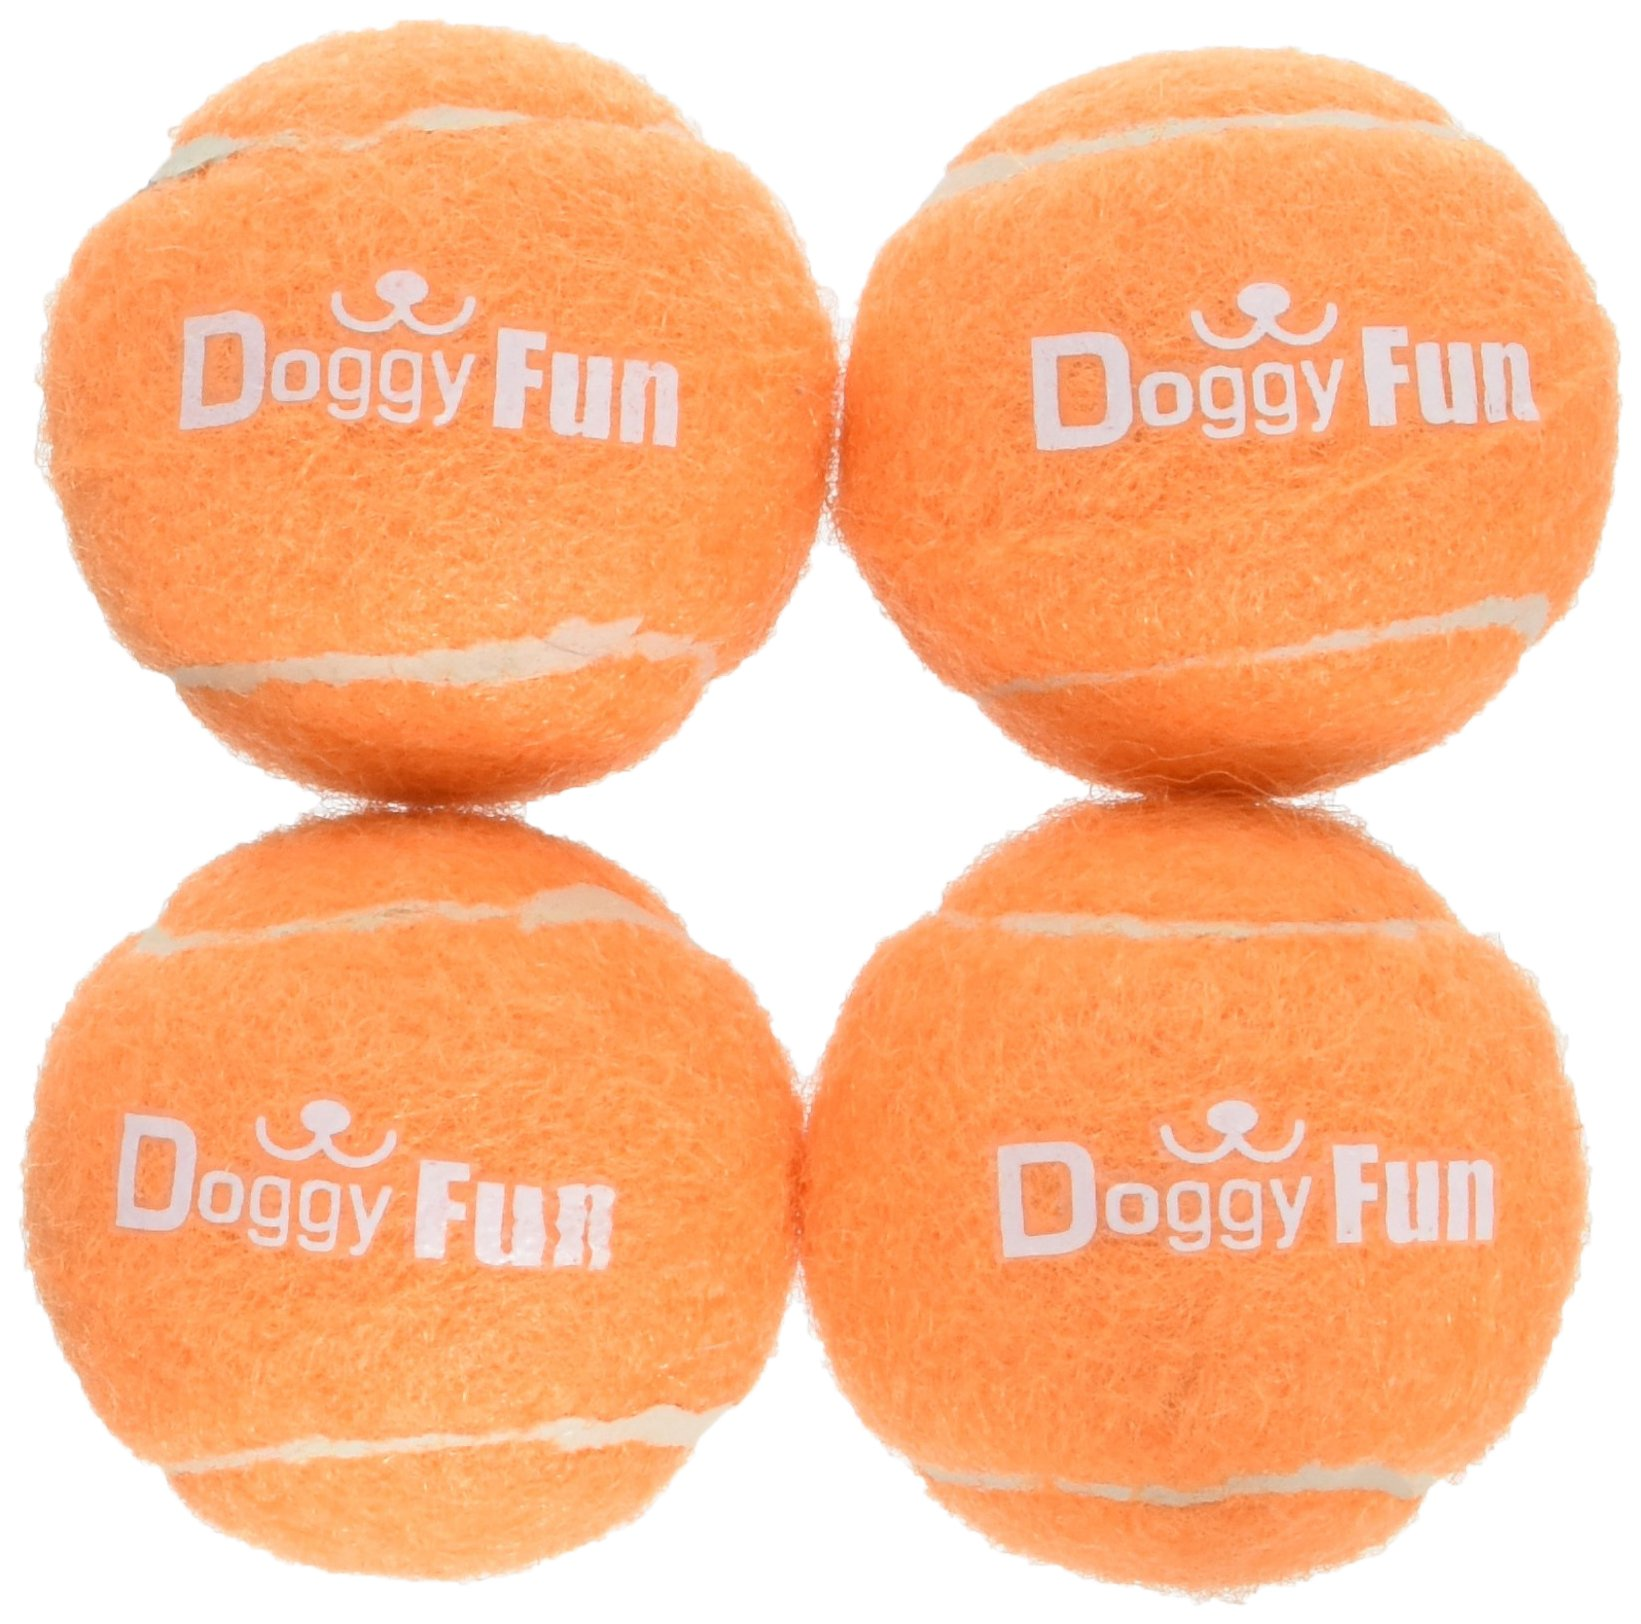 SereneLife Replacement Dog Fetch Toy Balls - 5 Pet Toy Balls in Each Pack SLDGFN5 Automatic Dog Ball Launcher Fetching Machine PRTSLDGFBLN6 by SereneLife